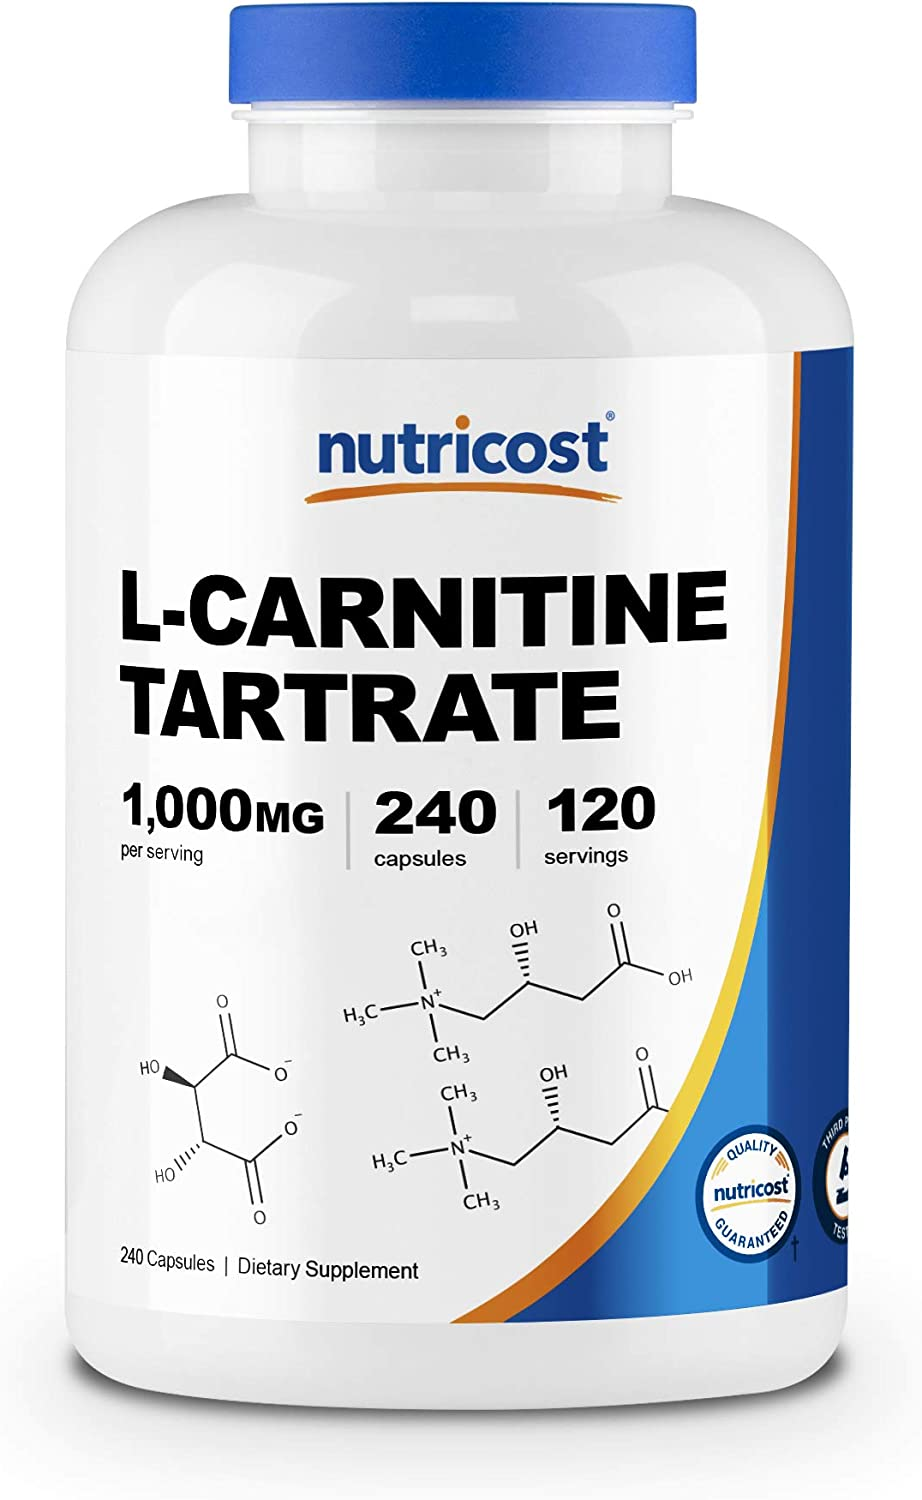 Nutricost L-Carnitine Tartrate 500mg, 240 Capsules - 1000mg Per Serving: Health & Personal Care